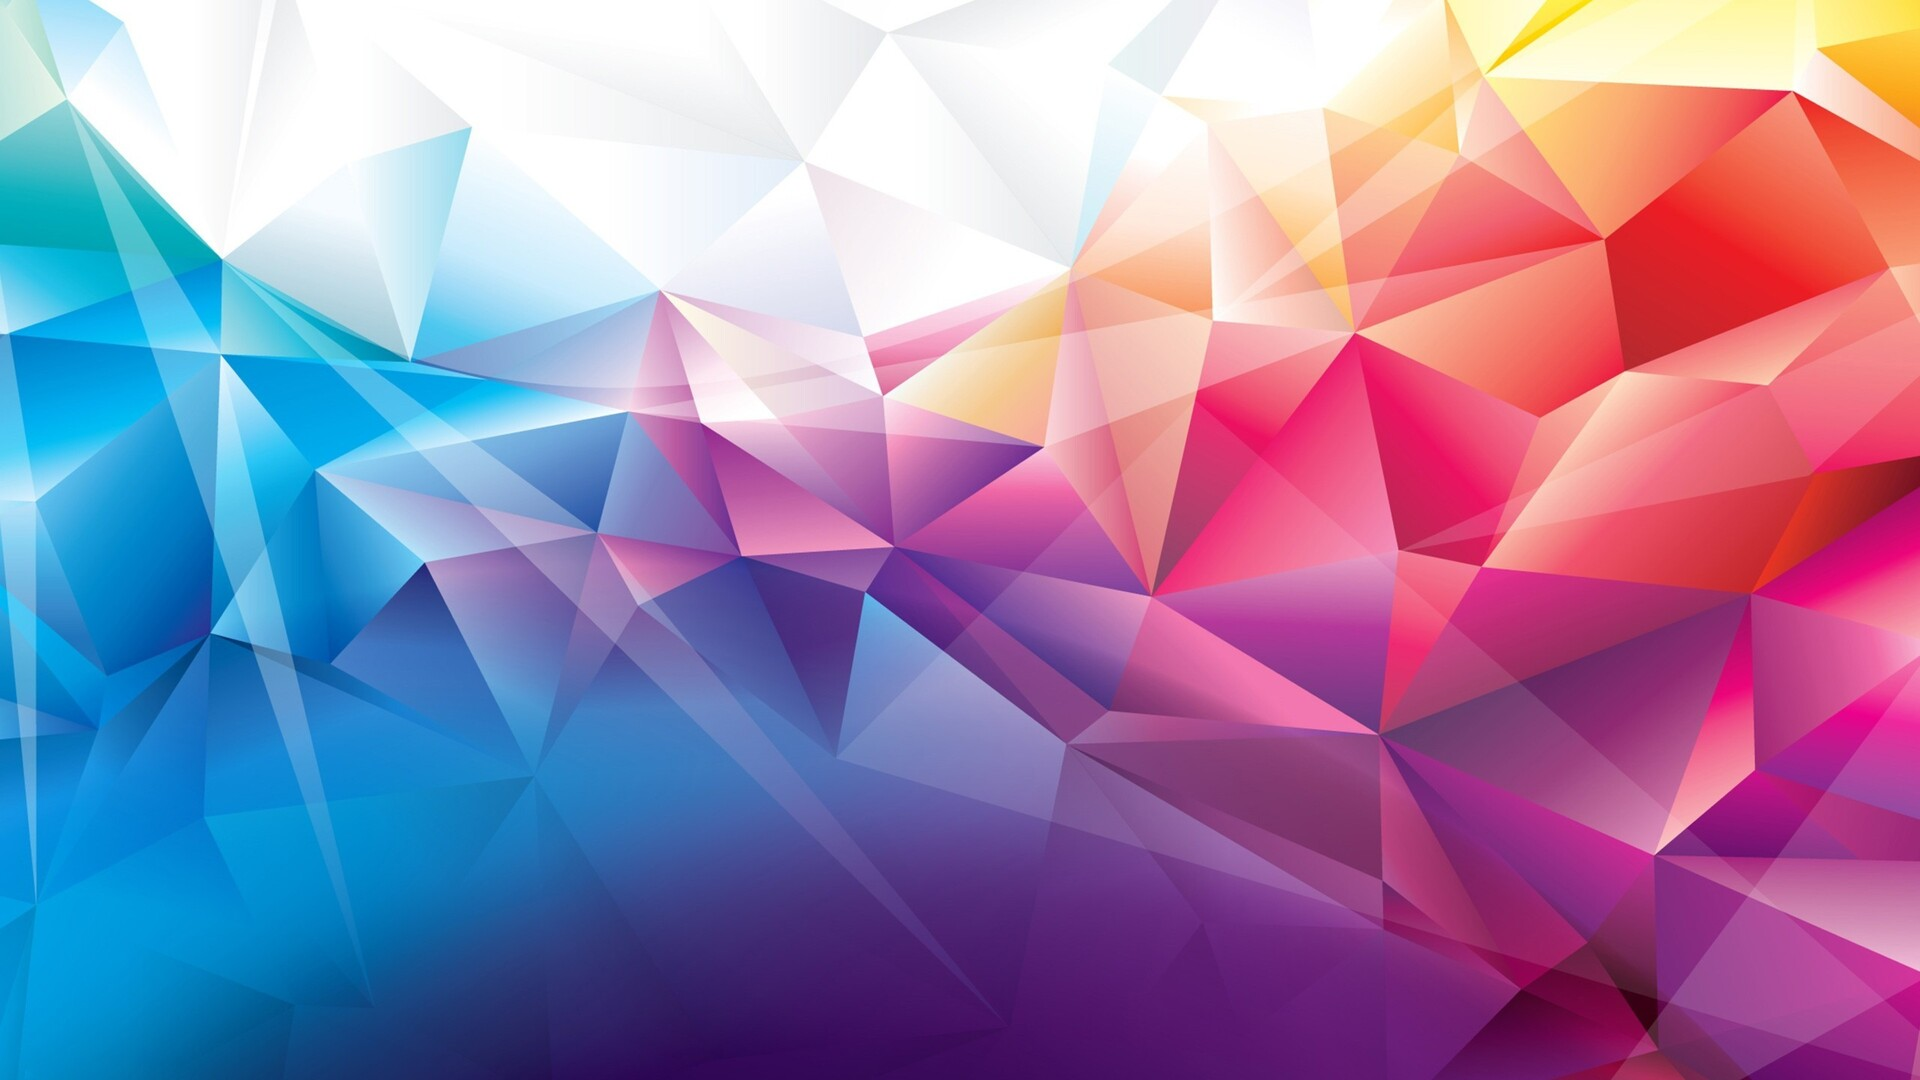 1920x1080 Colorful Polygons Laptop Full Hd 1080p Hd 4k Wallpapers